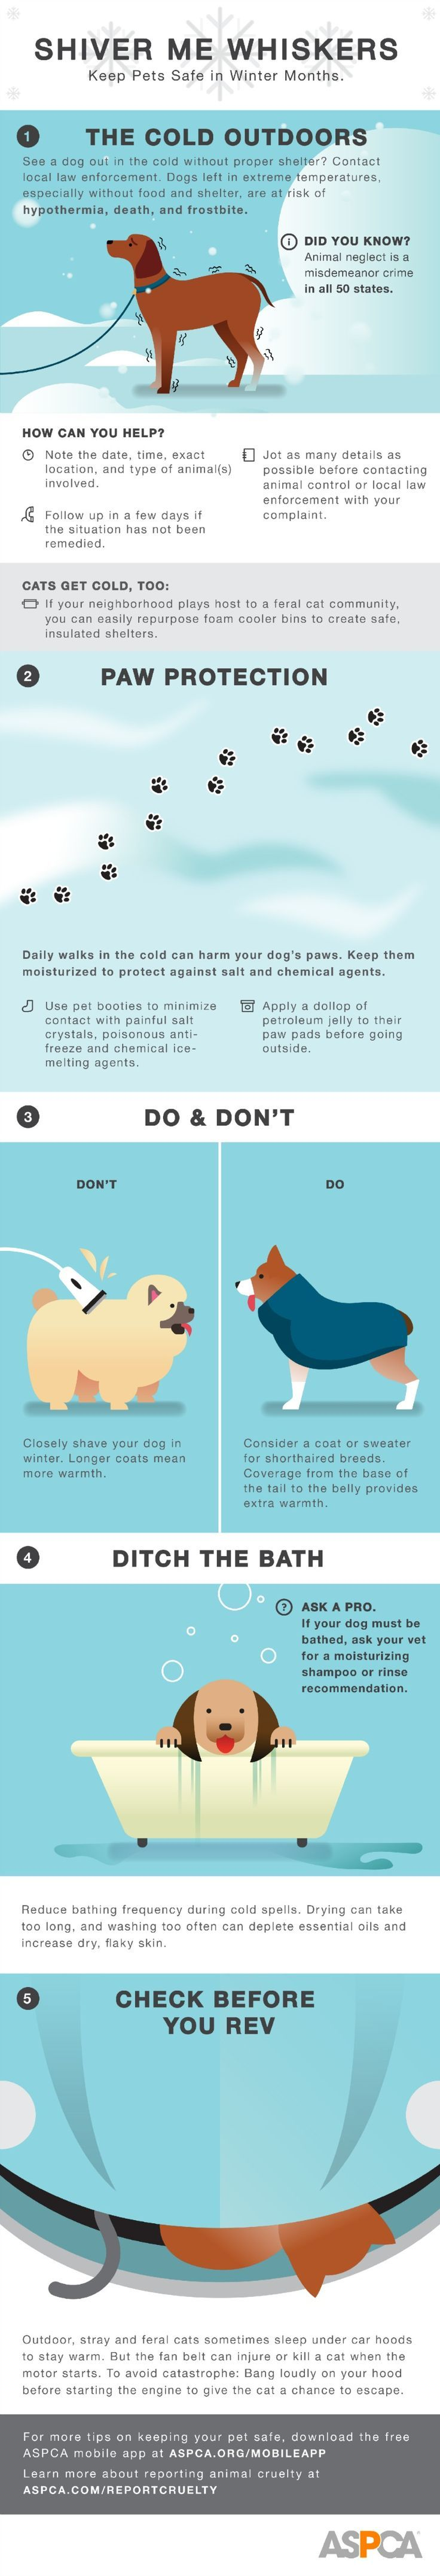 Keep your pets warm with these cold weather tips! Visit our site for an animated version: